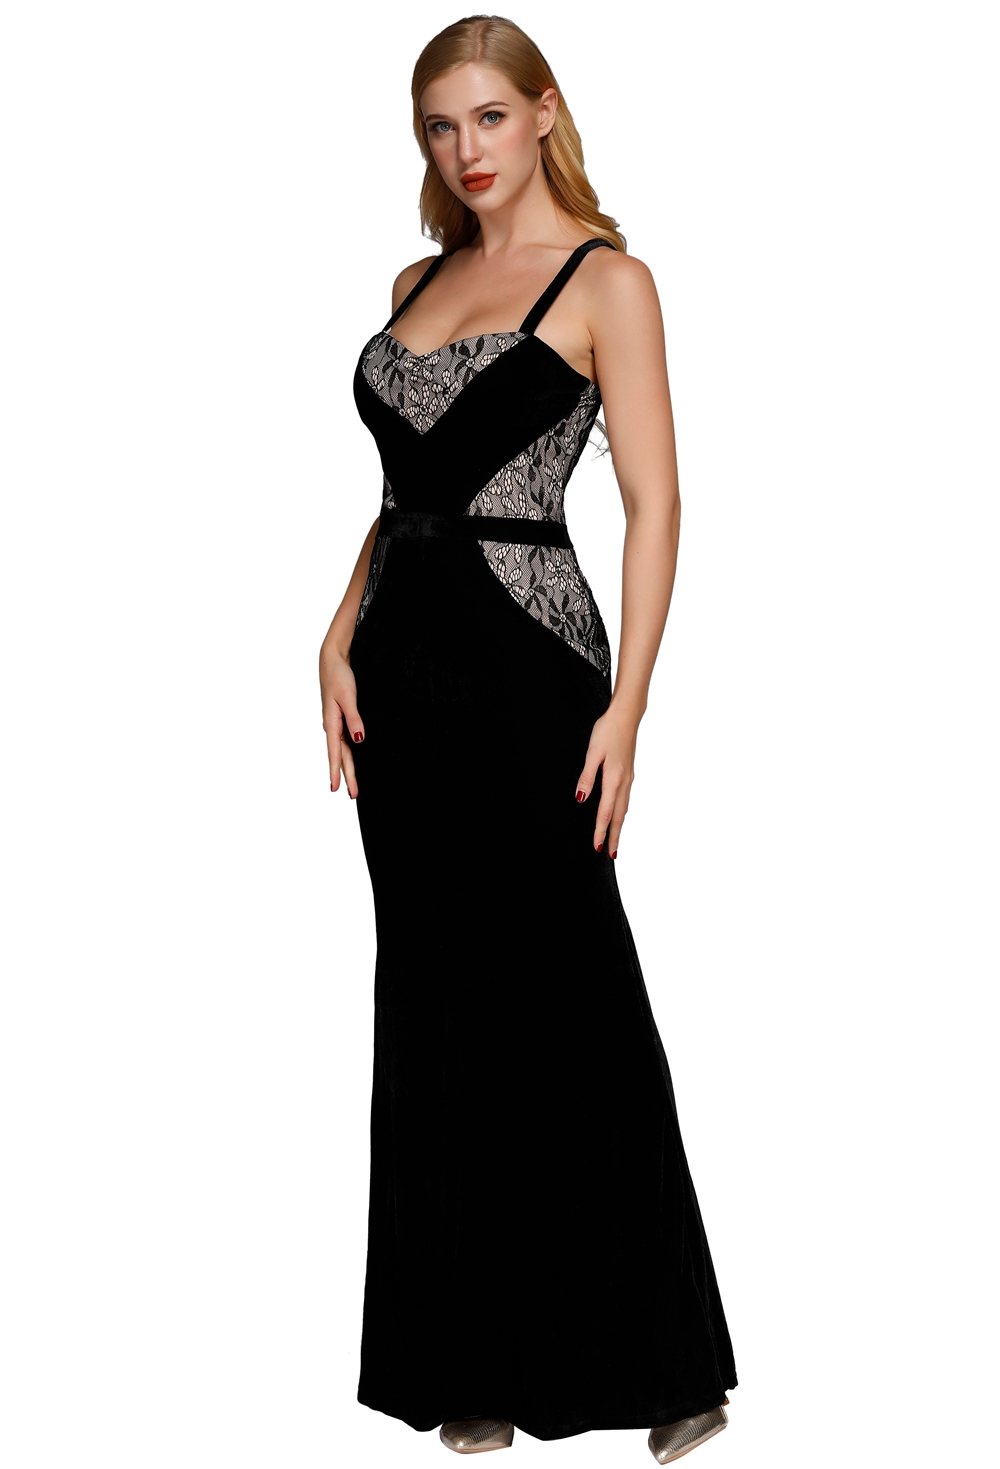 W25062-2 Velvet Evening Dress Black Evening Gown Mermaid Evening Dress For Women